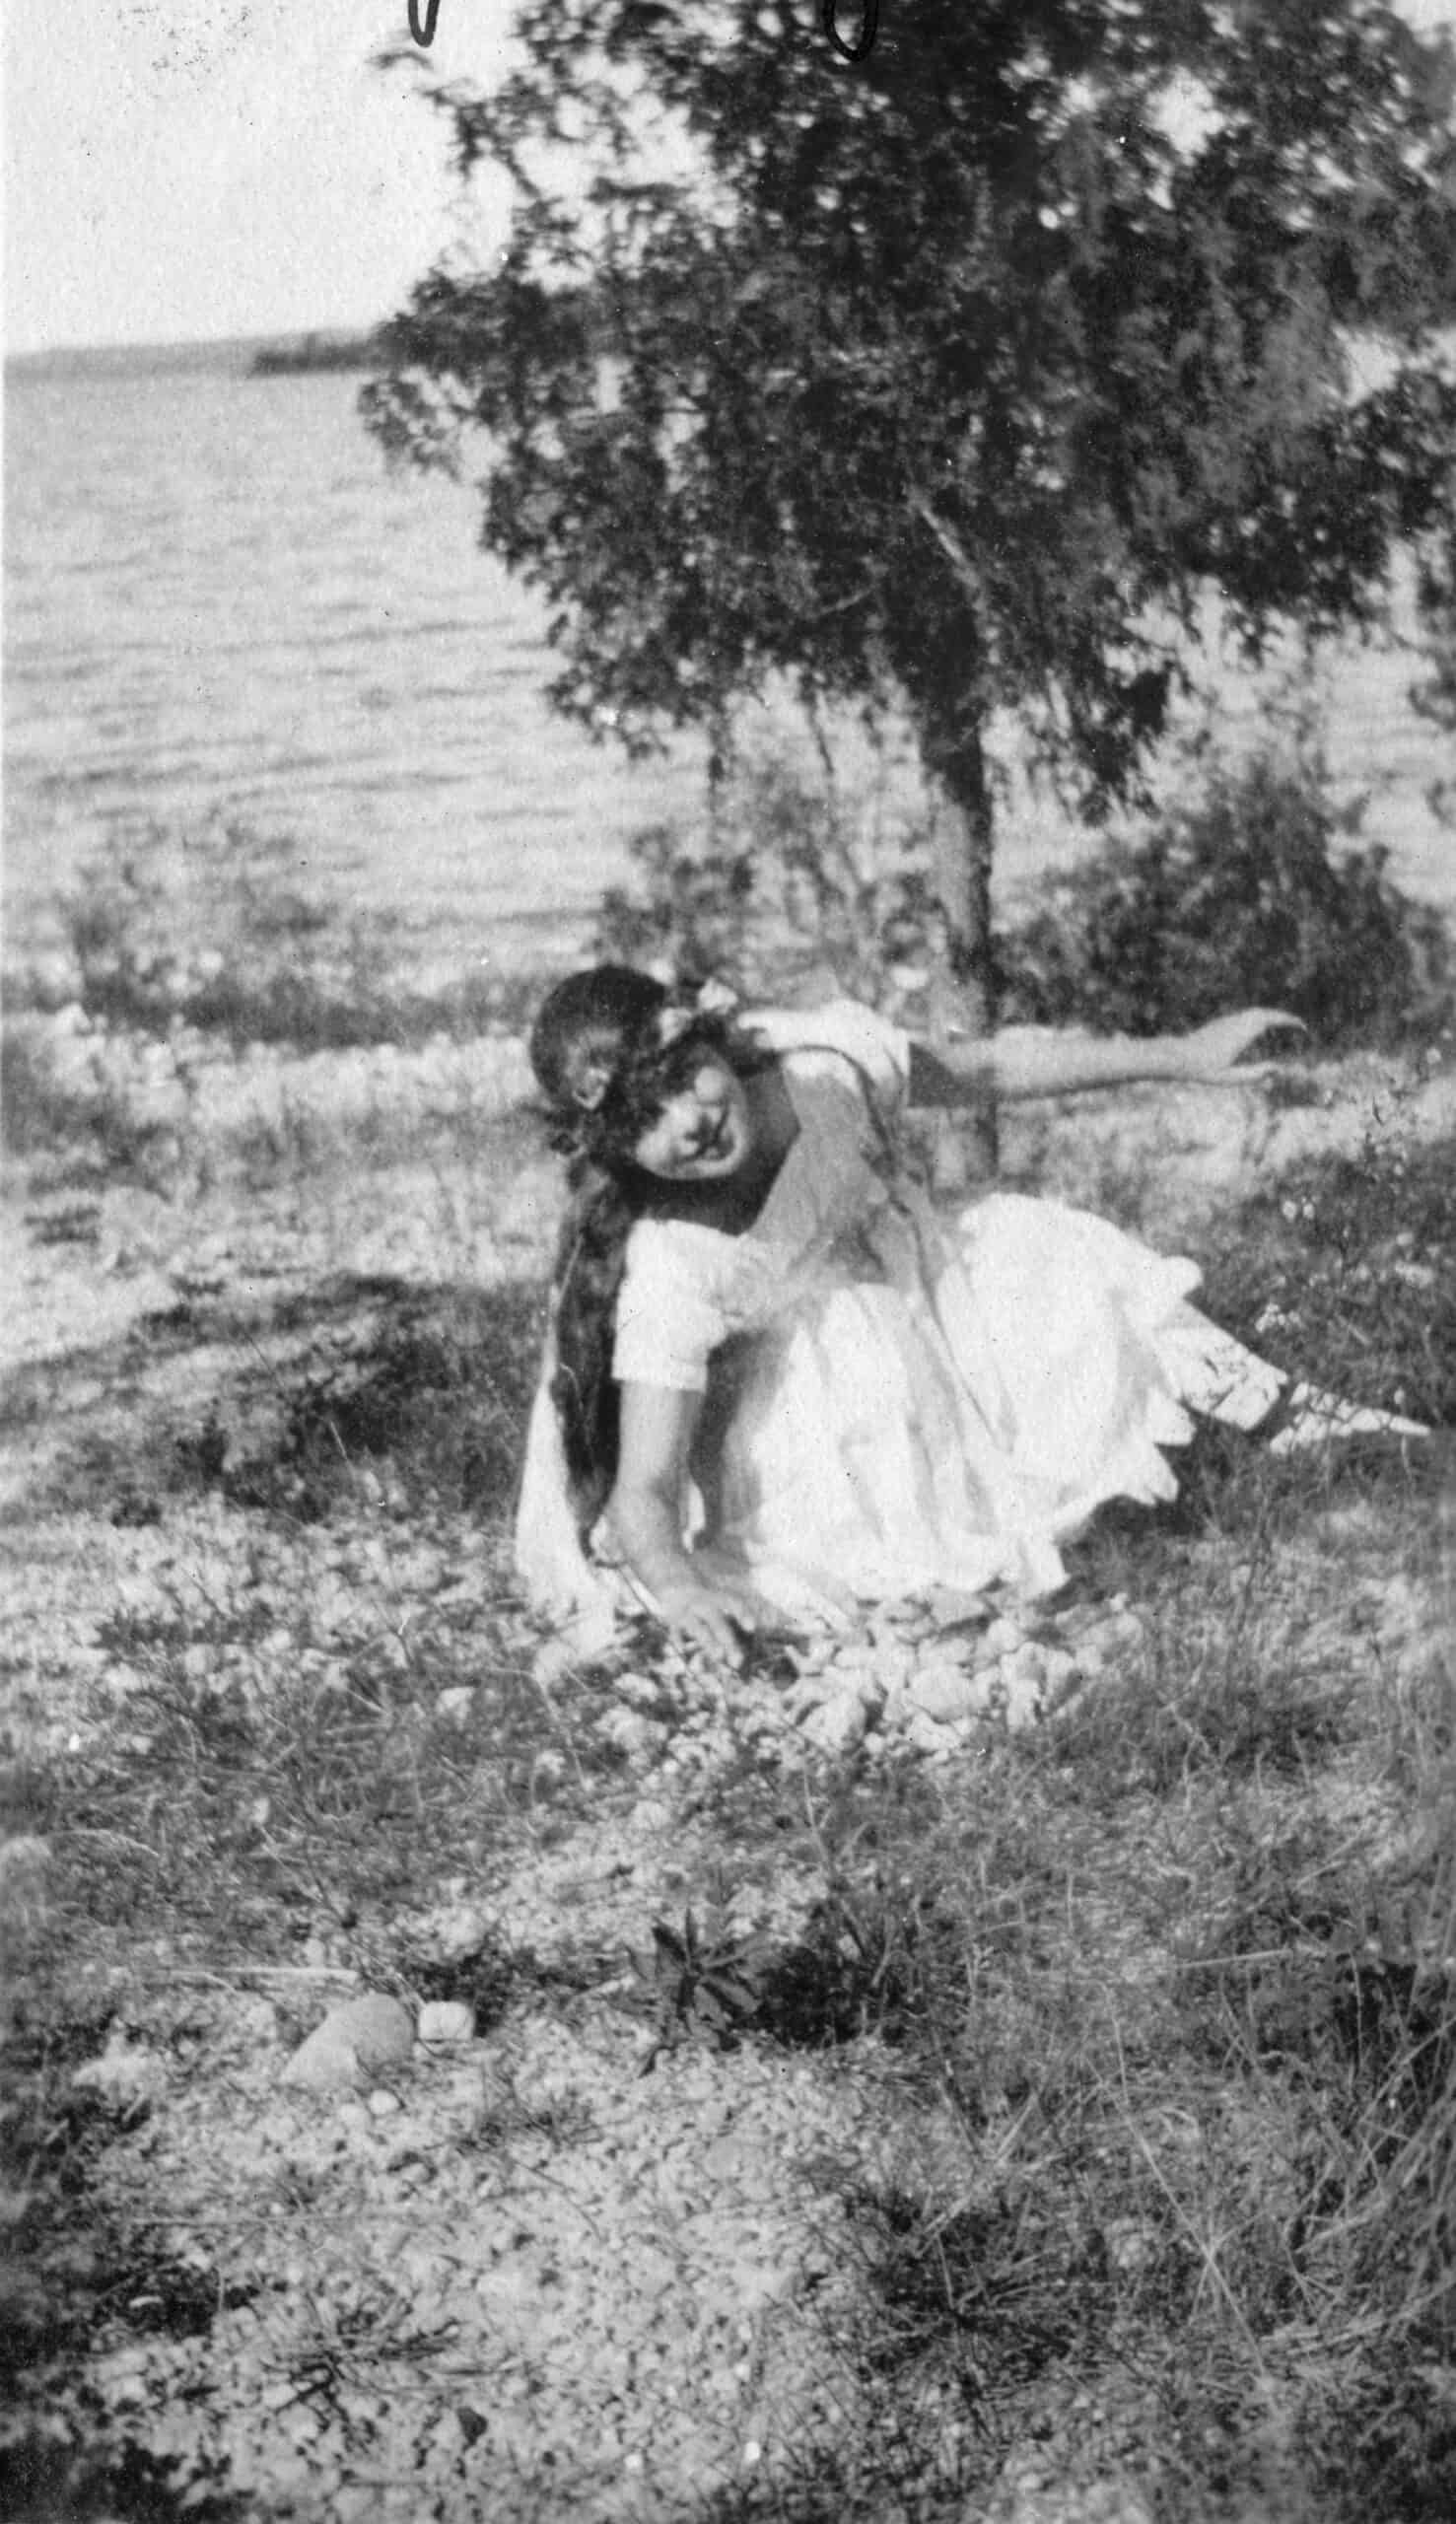 Mary Meany's grandmother plays near their cottage in 1918.